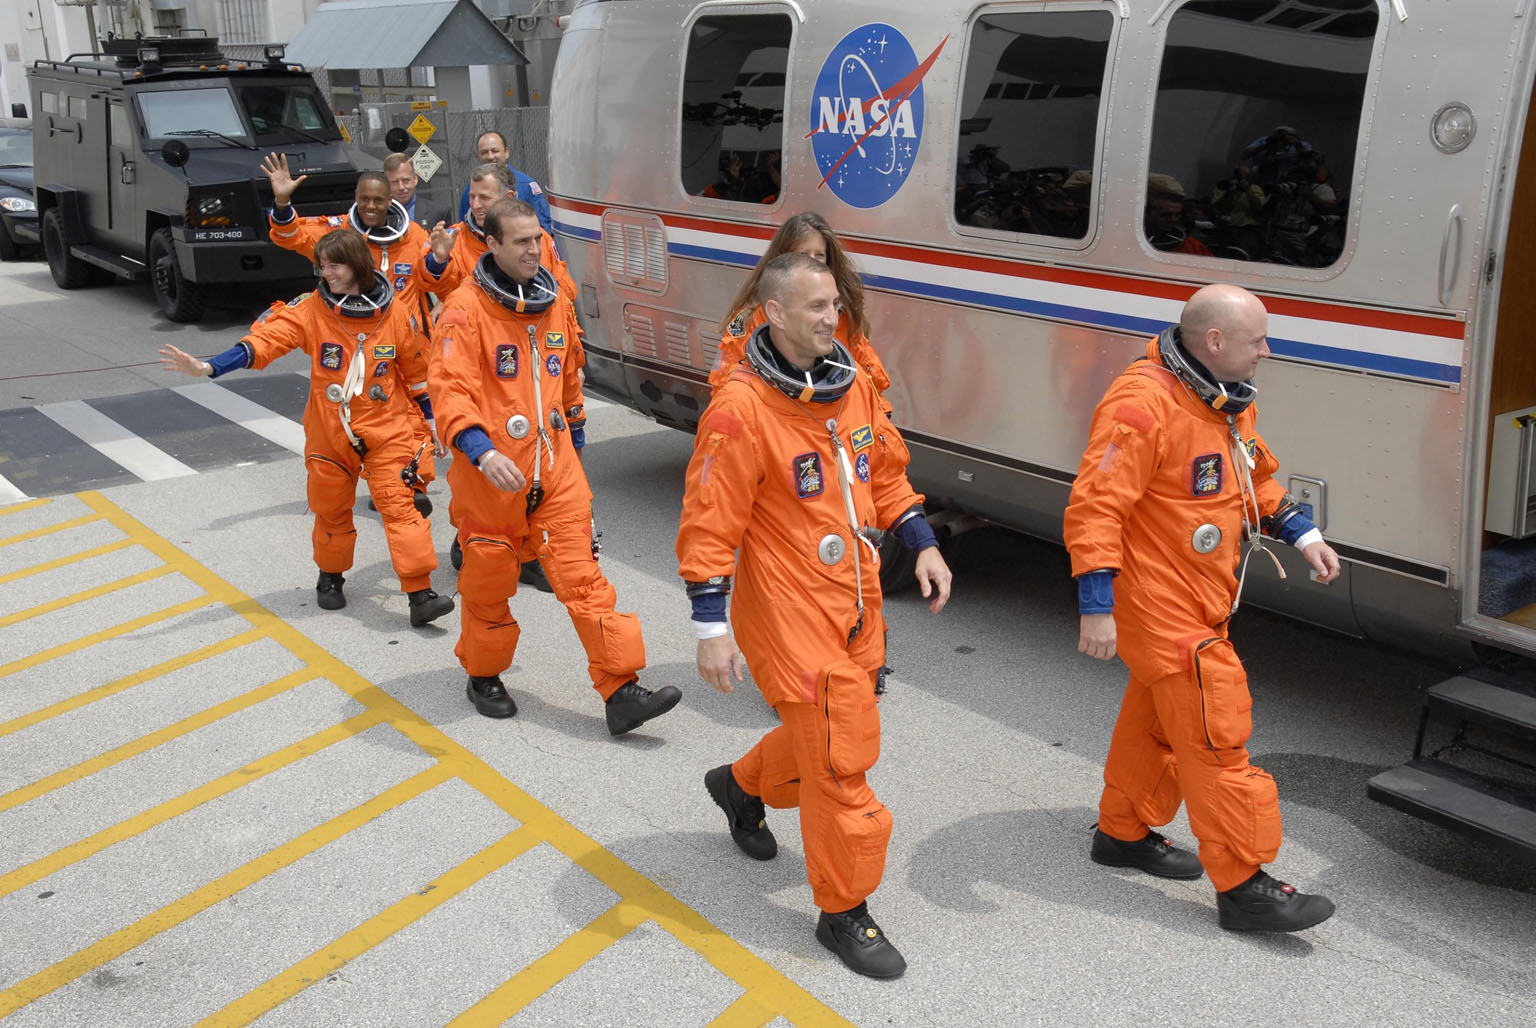 KENNEDY SPACE CENTER, FLA. -- The STS-118 crew waves to spectators as they head for the Astrovan. From left are Mission Specialists Alvin Drew, Barbara R. Morgan, Dave Williams and Rick Mastracchio, Pilot Charlie Hobaugh, Mission Specialist Tracy Caldwell and Commander Scott Kelly. The Astrovan will take them to Launch Pad 39A for final suit preparations before climbing into Space Shuttle Endeavour for launch at 6:36 p.m. EDT. The STS-118 mission is the 22nd shuttle flight to the International Space Station. It will continue space station construction by delivering a third starboard truss segment, S5, and other payloads such as the SPACEHAB module and the external stowage platform 3. The 11-day mission may be extended to as many as 14 depending on the test of the Station-to-Shuttle Power Transfer System that will allow the docked shuttle to draw electrical power from the station and extend its visits to the orbiting lab. NASA/Kim Shiflett